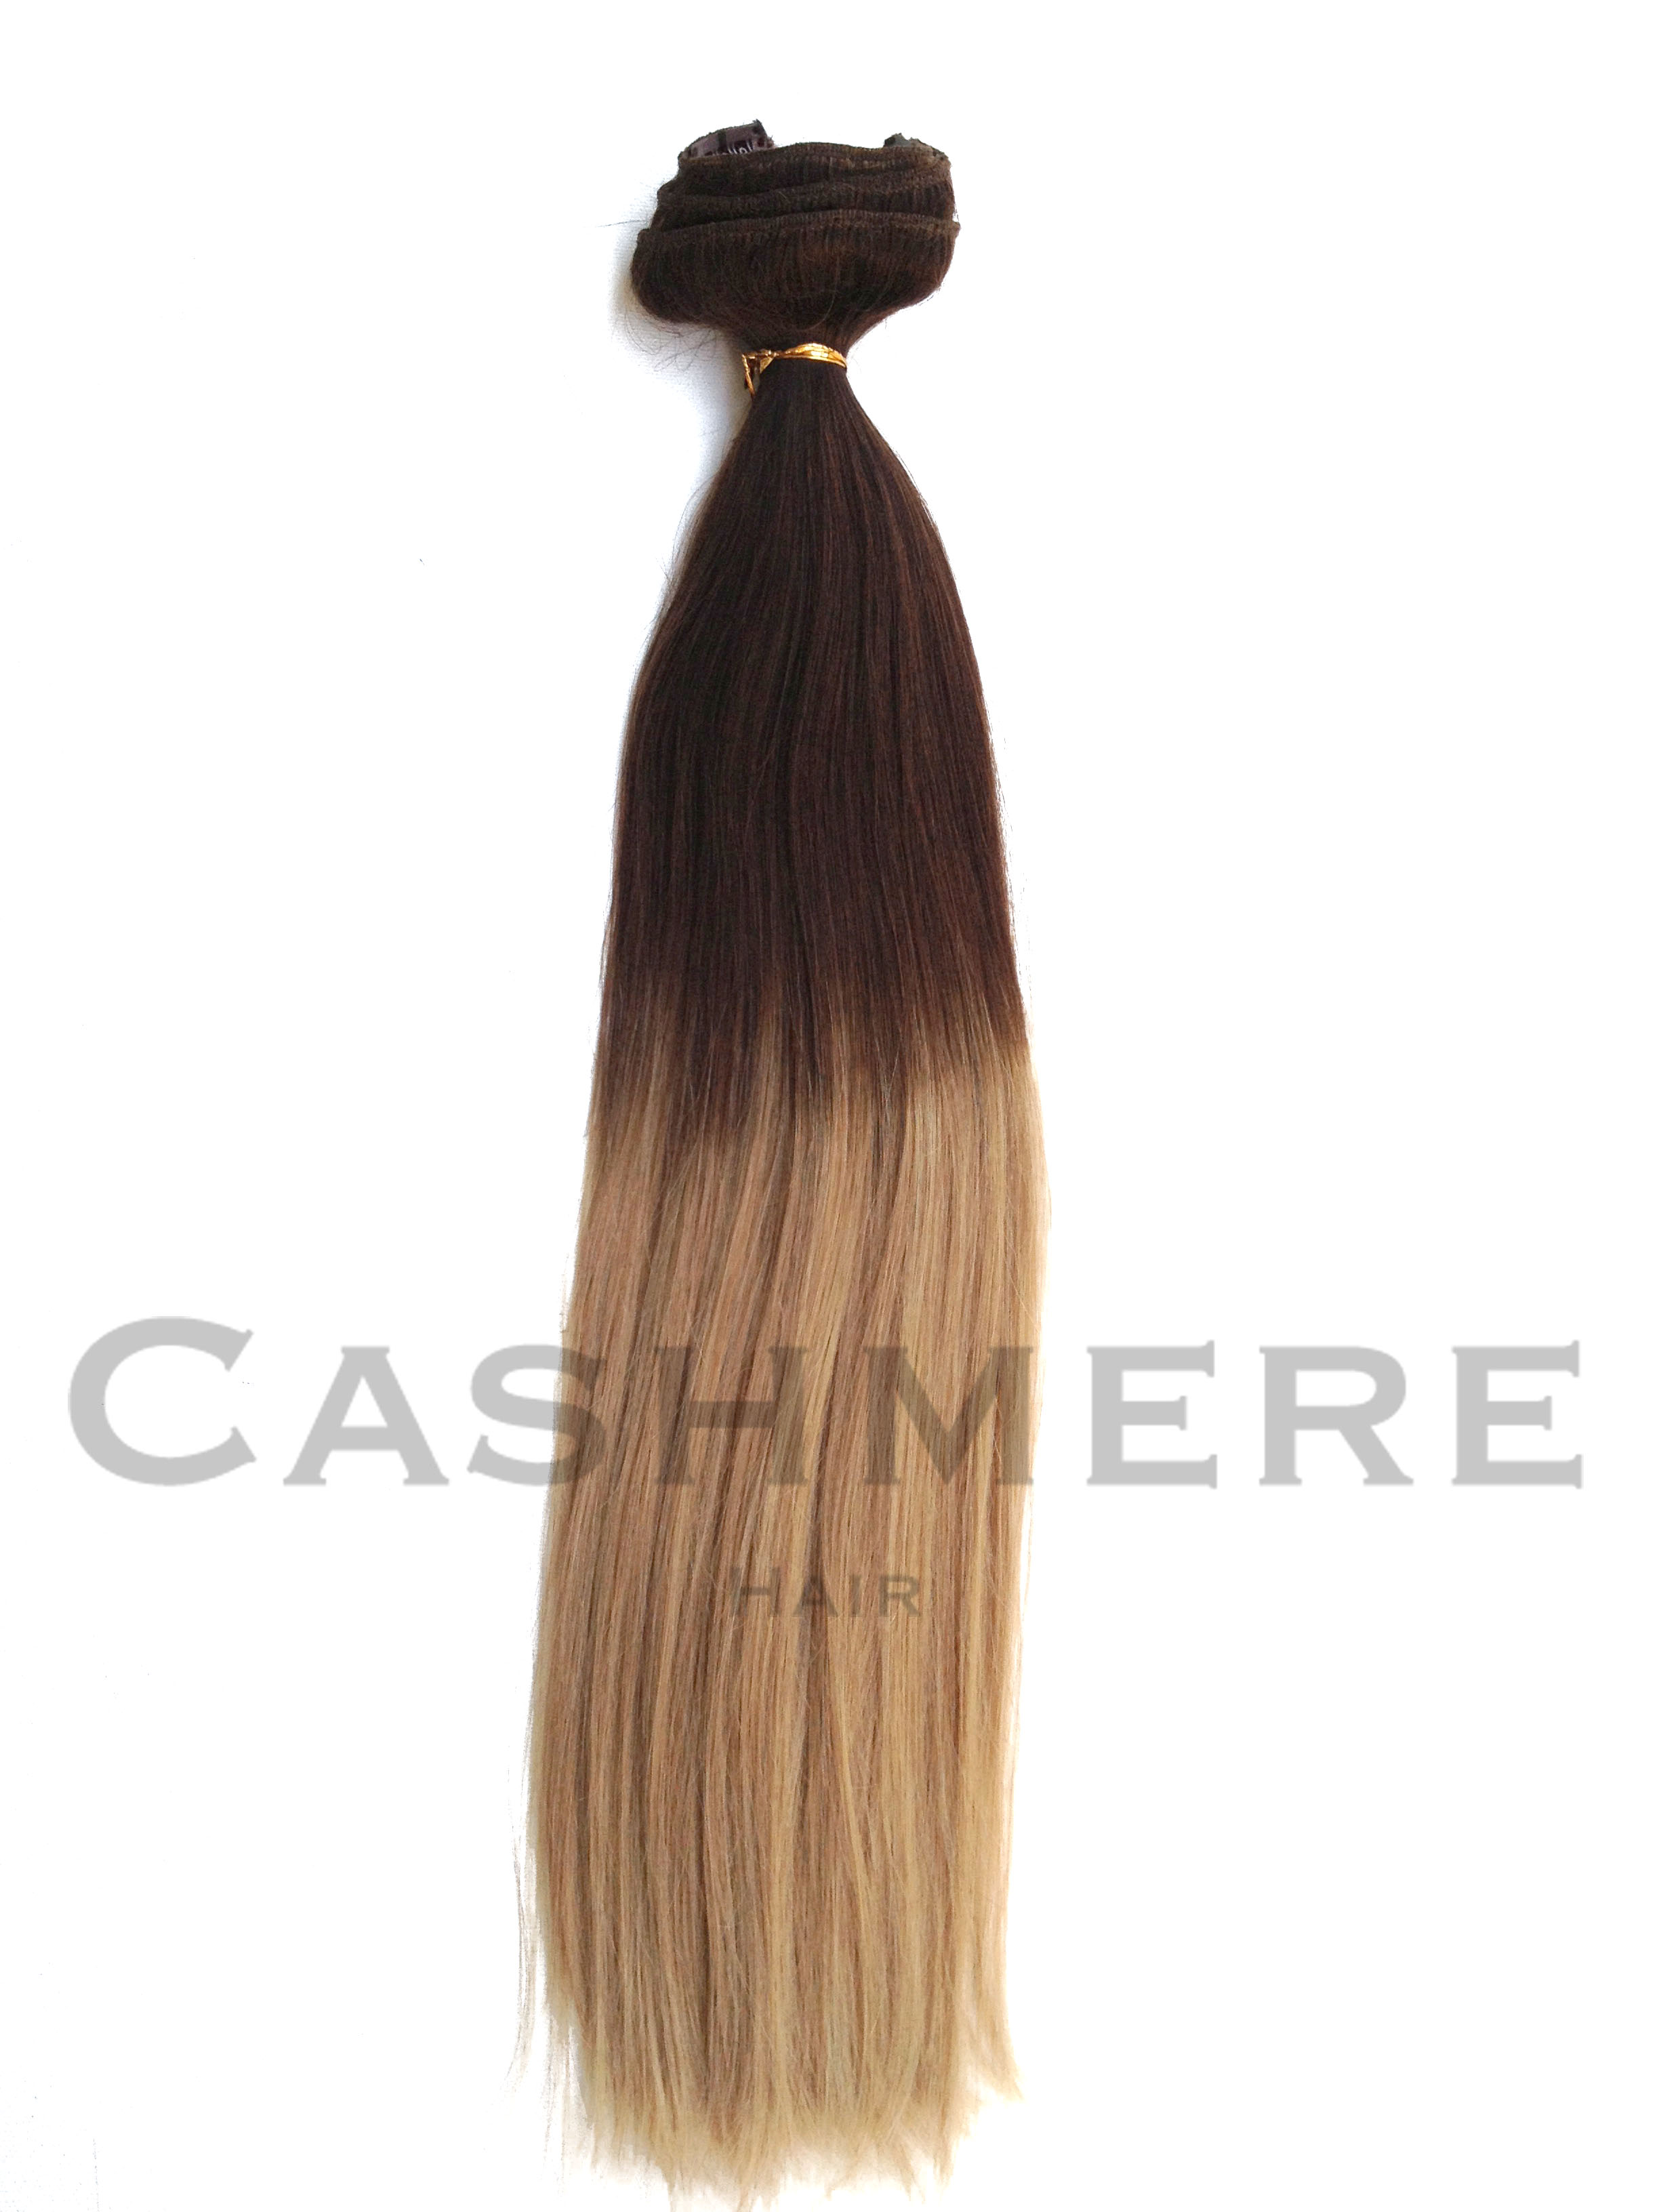 OMBRÉ Hair Extensions from CASHMERE HAIR CLIP IN EXTENSIONS!